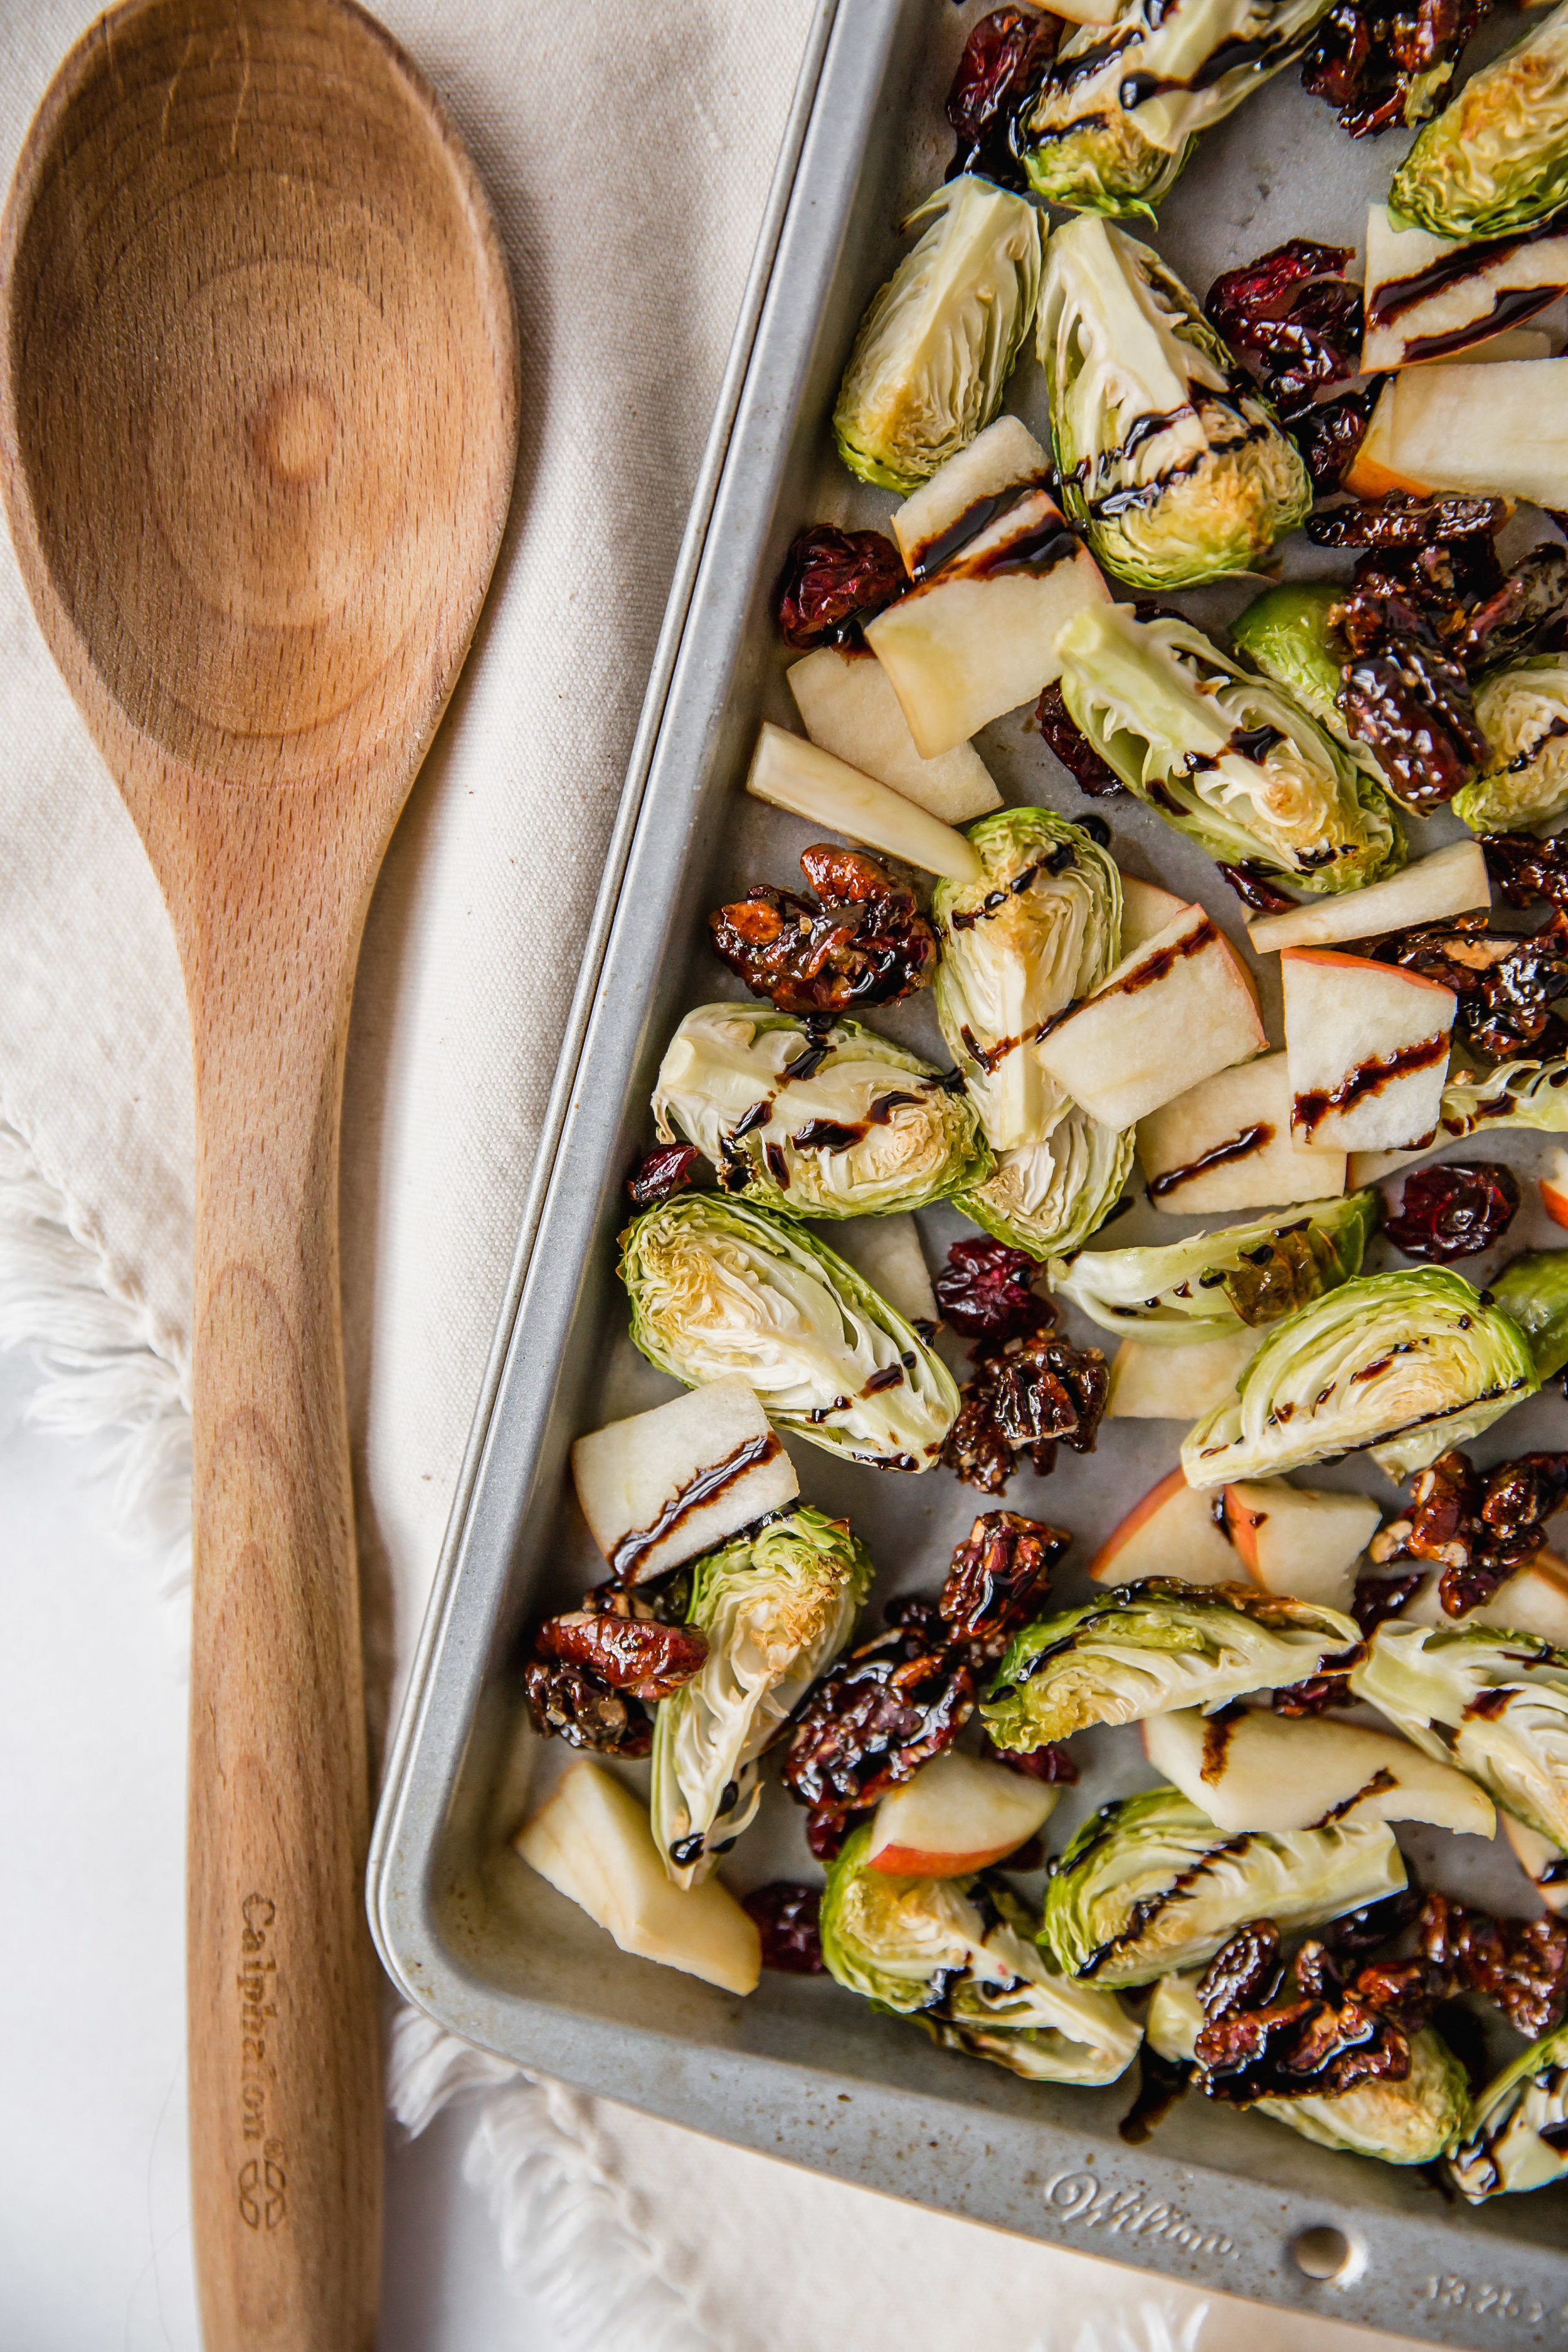 brussel_sprouts_balsamic_glaze_apple_cranberry-4.jpg